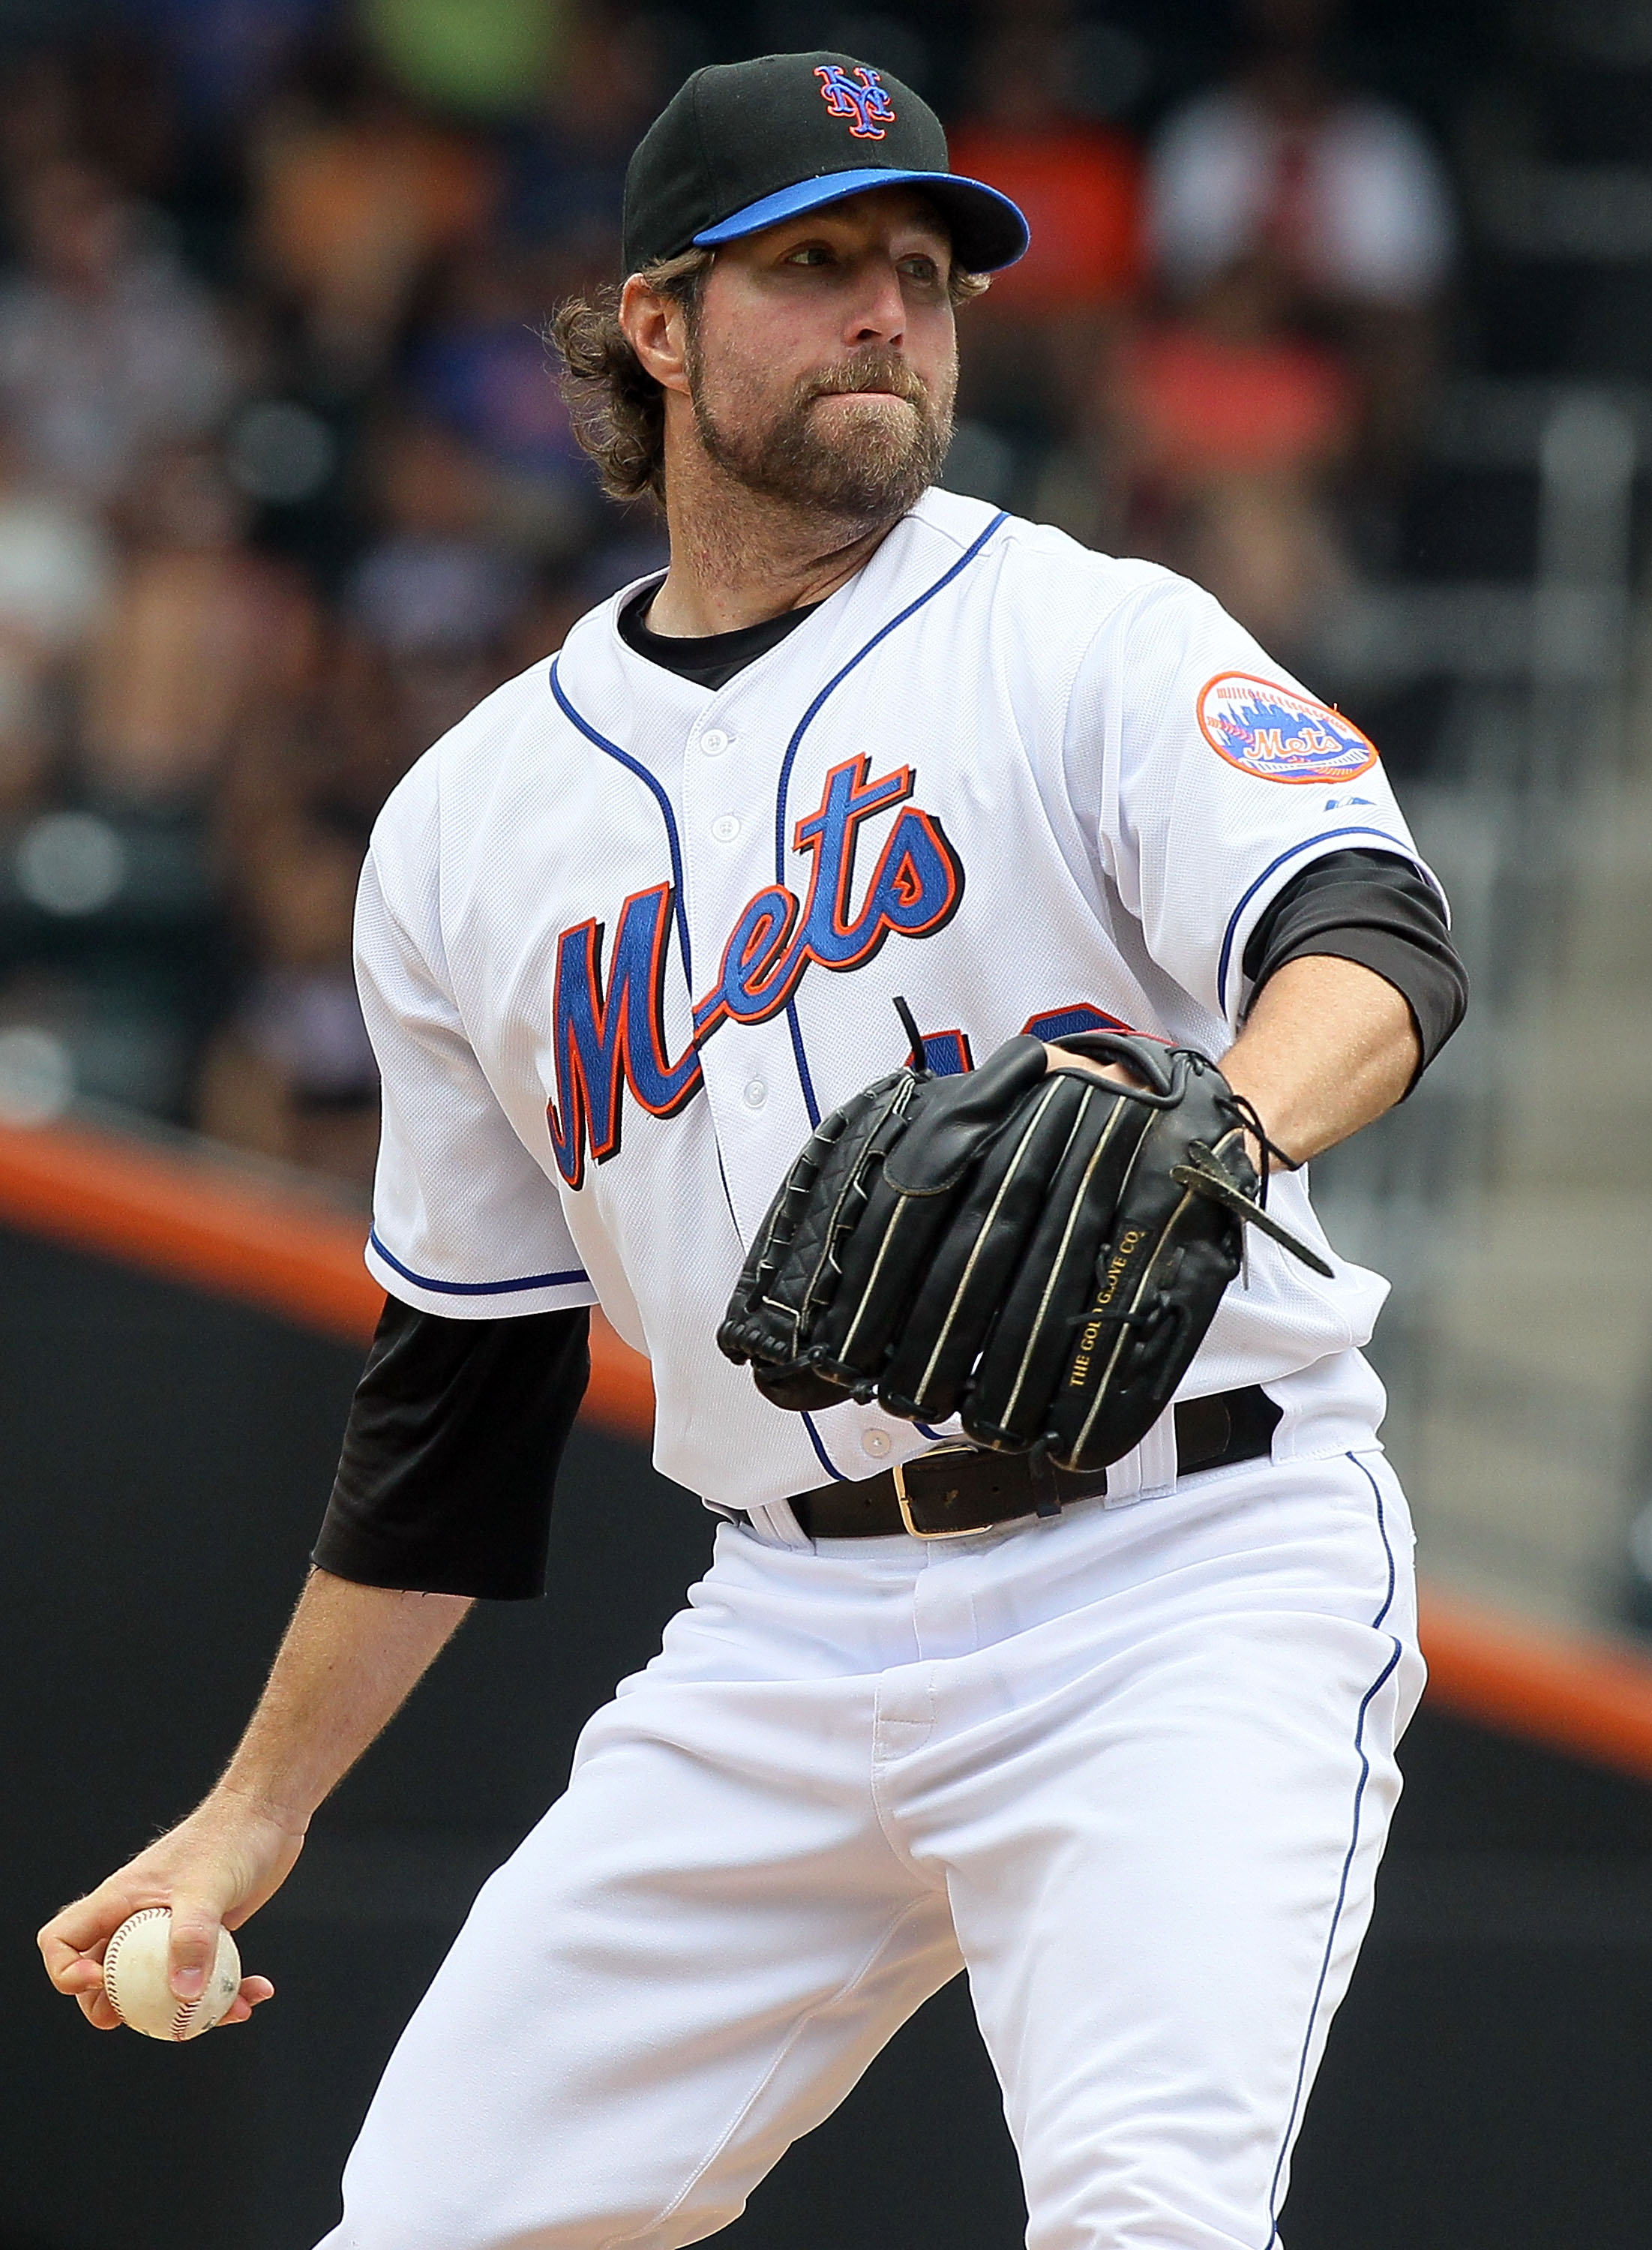 NEW YORK - JULY 29:  R.A. Dickey #43 of the New York Mets delivers a pitch against the St. Louis Cardinals on July 29, 2010 at Citi Field in the Flushing neighborhood of the Queens borough of New York City.  (Photo by Jim McIsaac/Getty Images)